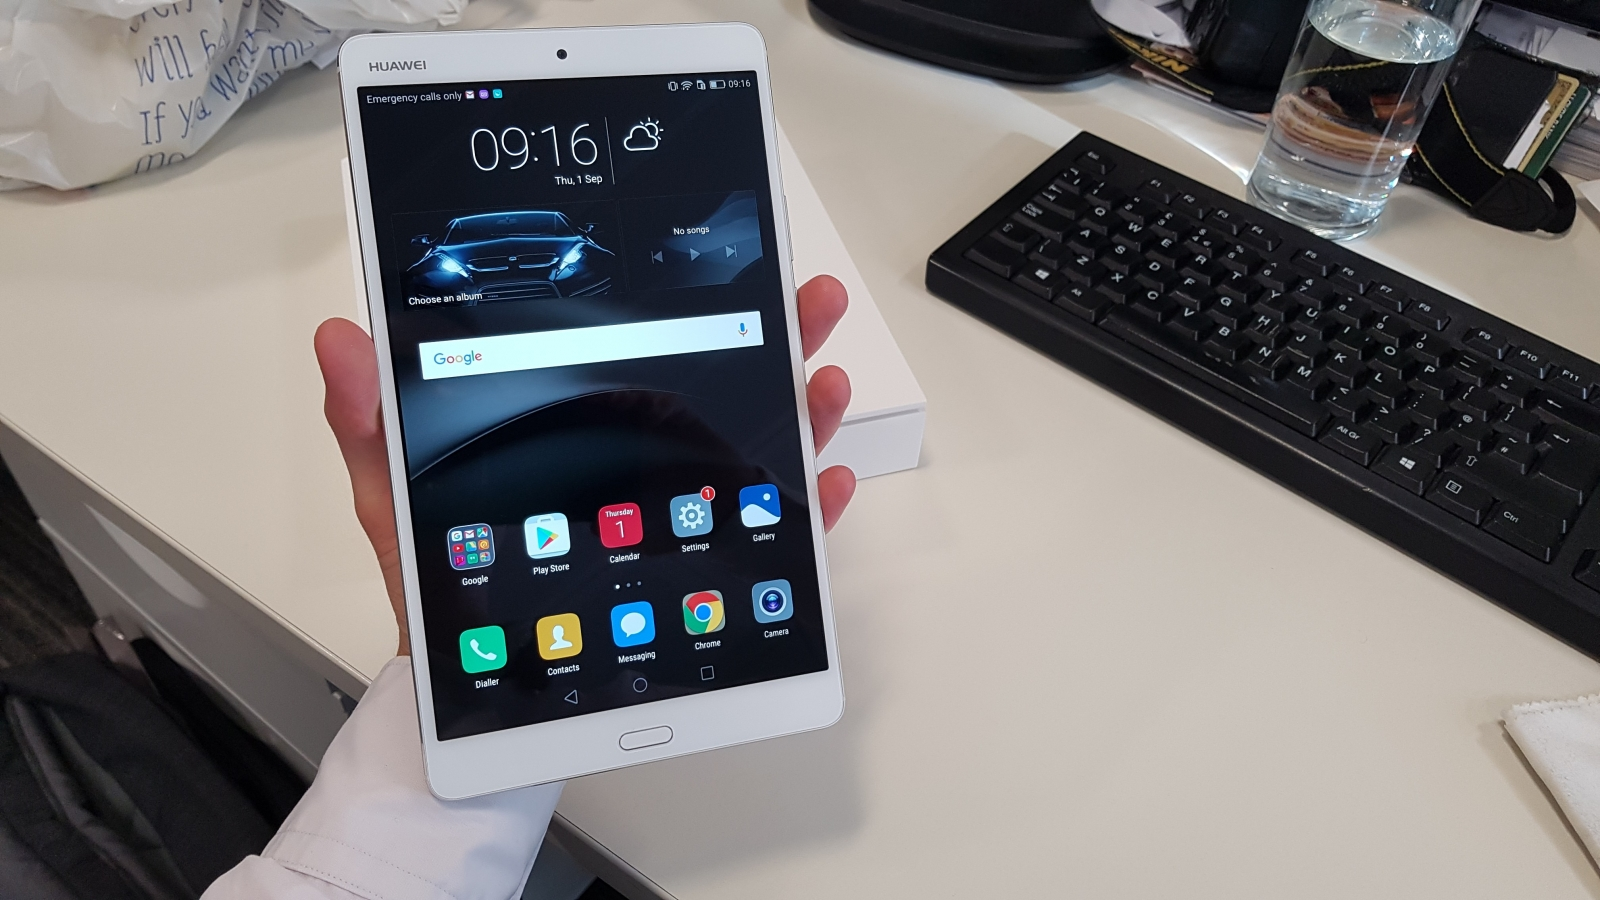 IFA 2016 Huawei MediaPad M3 Hands On Review